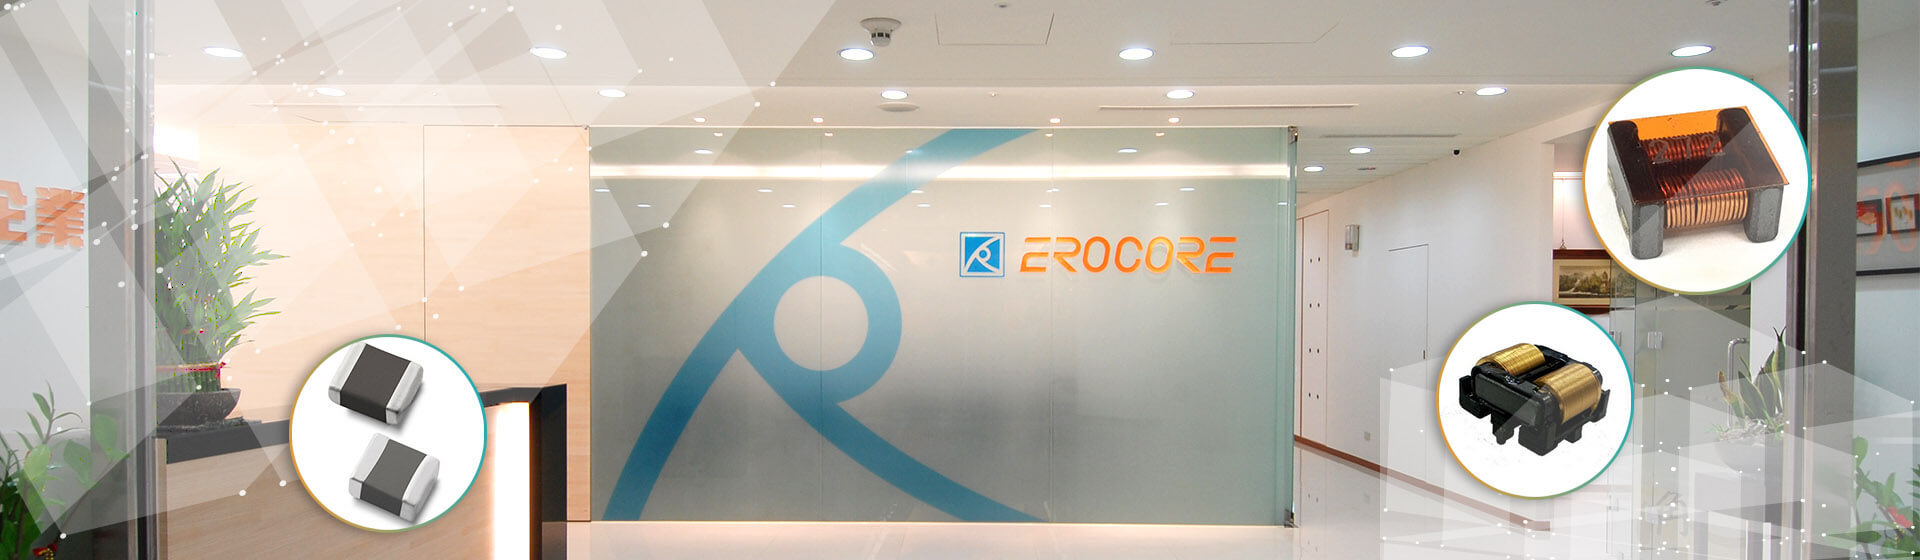 Erocore was established in 1997 which has possessed research <br>     & development technology and professional production with over <br>     20 years field experience.<br>         Erocore provides diversified products in the industry for customers<br>     to solve high-power, high-frequency and EMI functional problems.